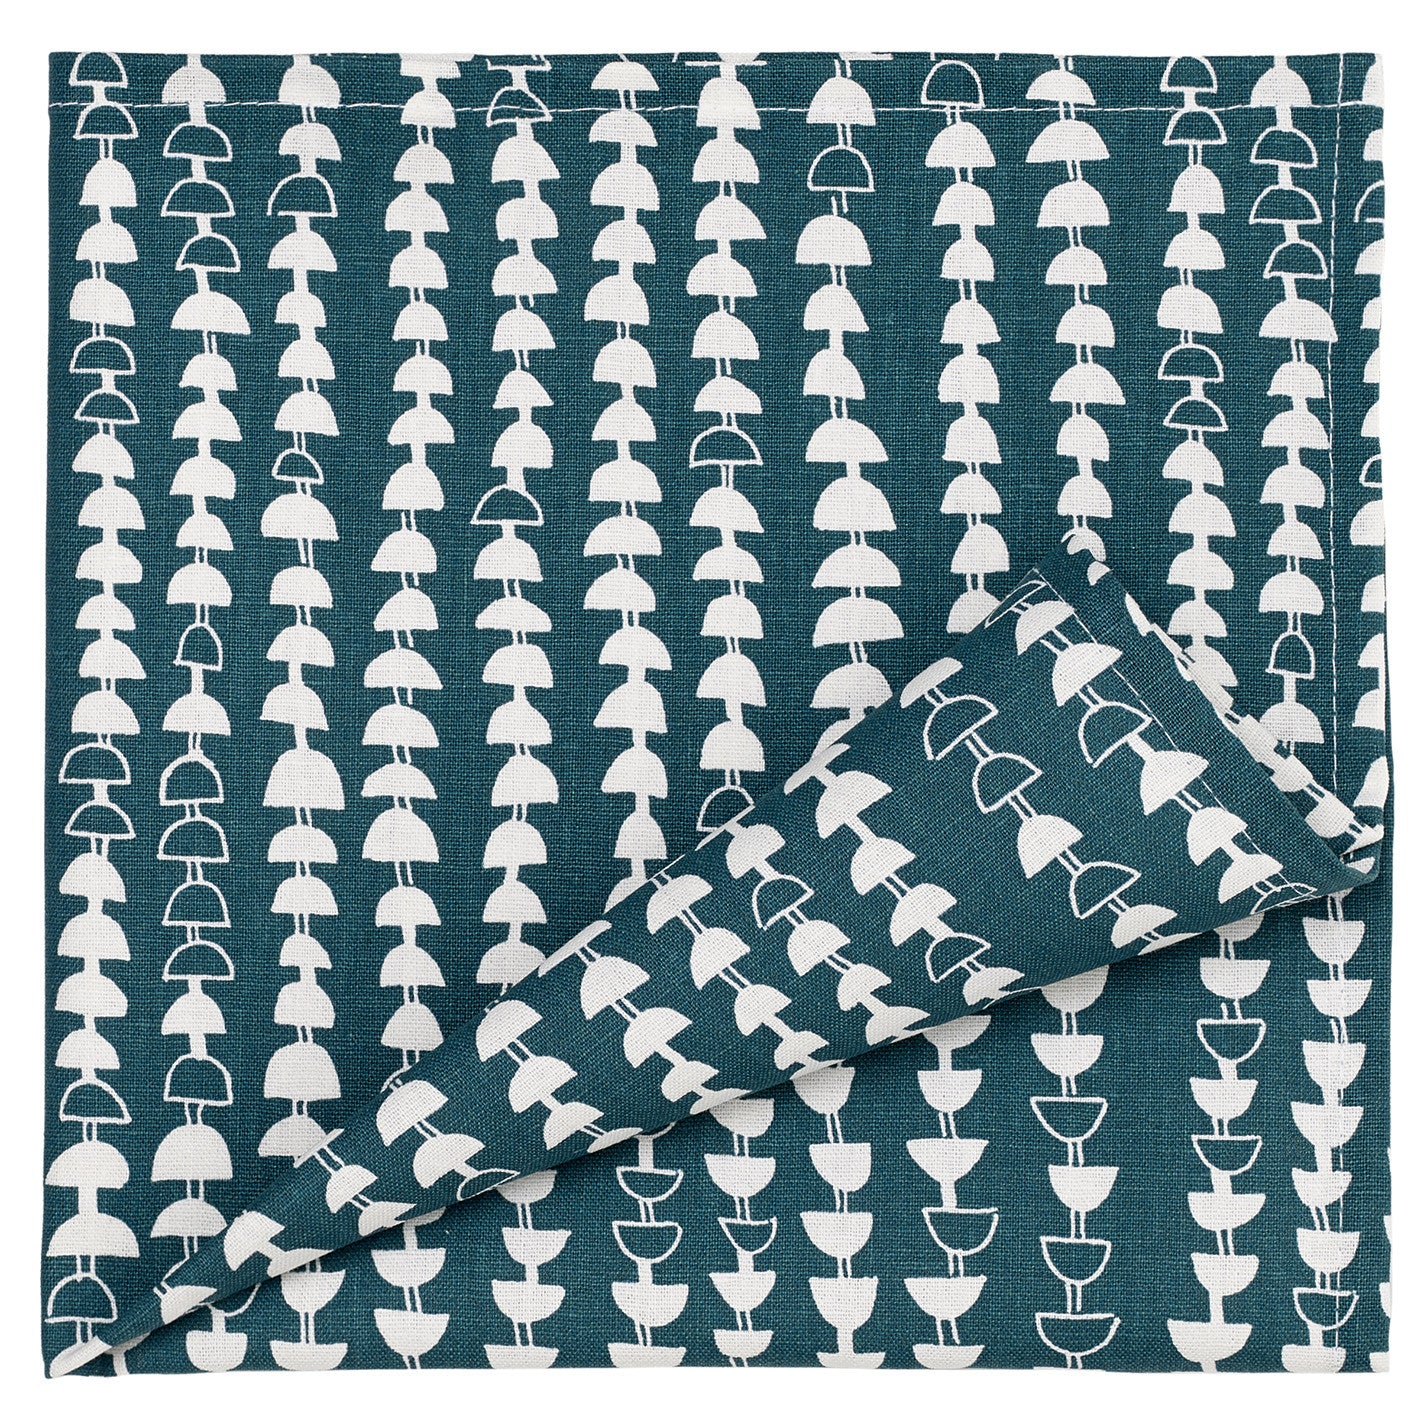 Hopi Patterned Cotton Linen Napkins in Dark Petrol Blue